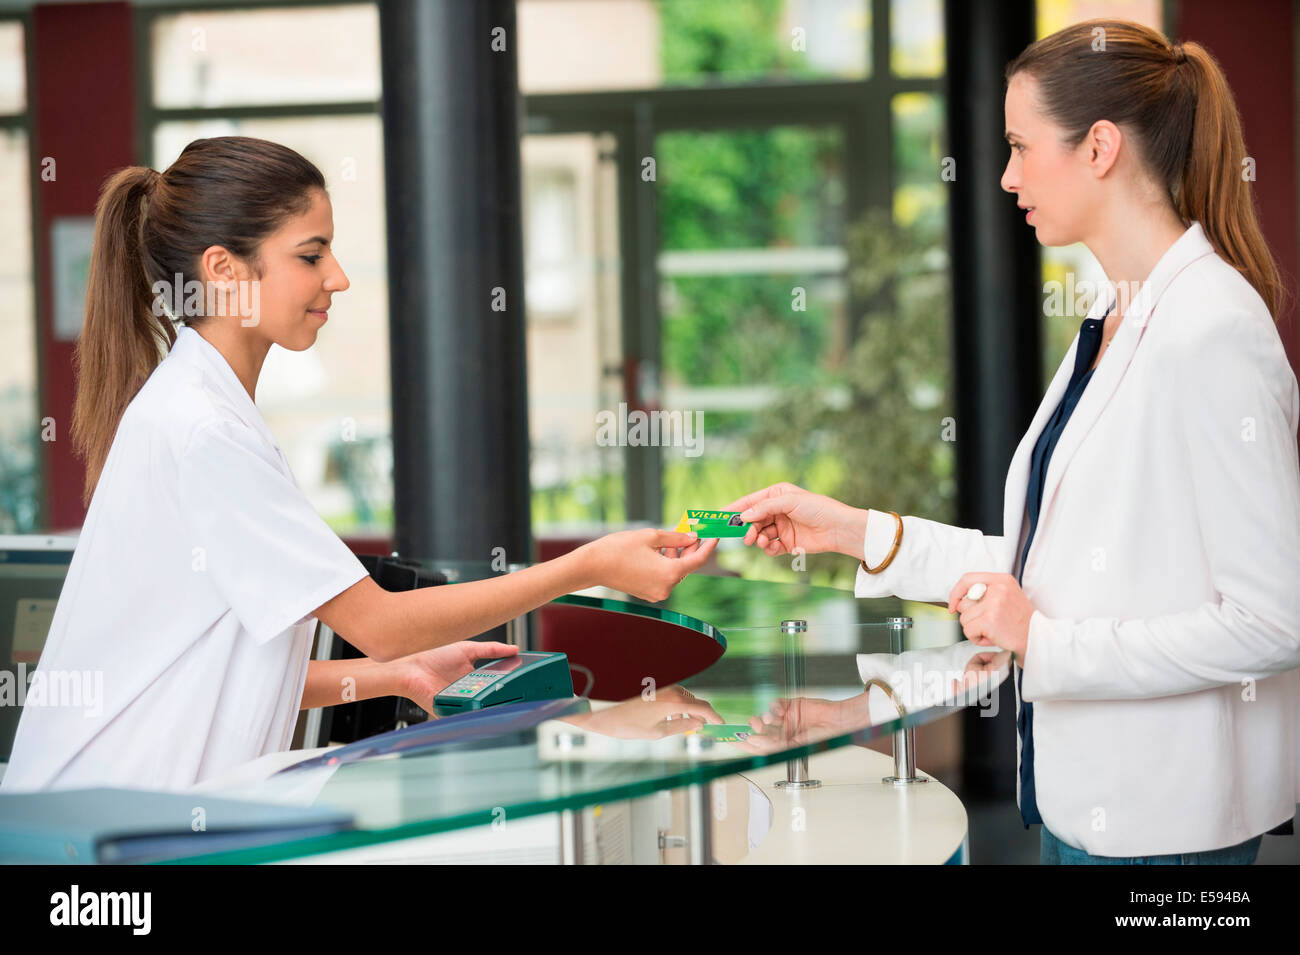 Woman giving french social security card to receptionist at hospital reception desk - Stock Image